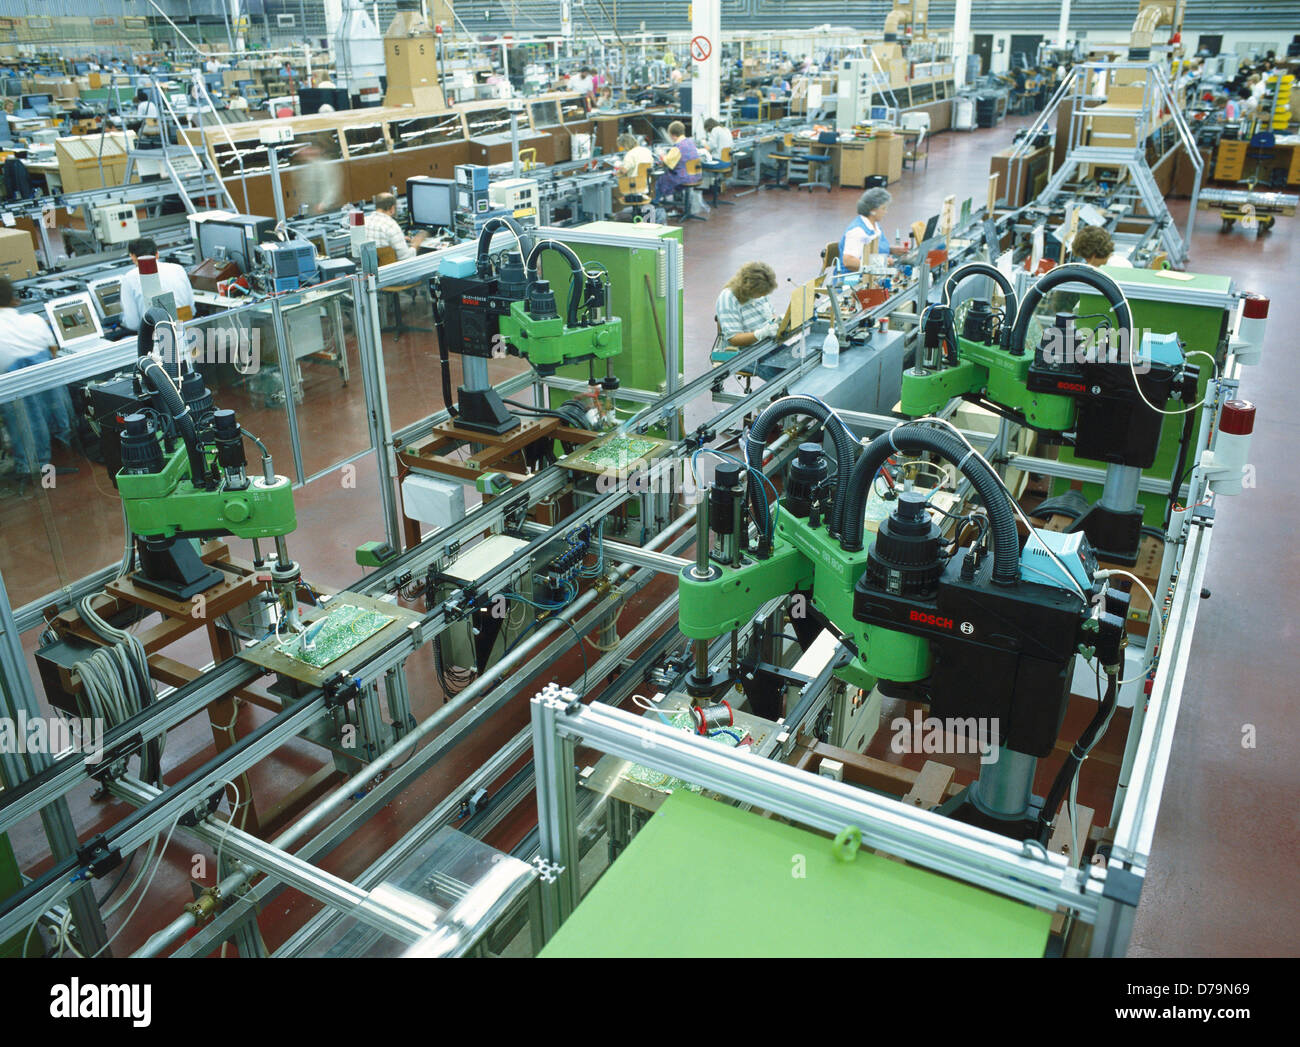 Robots And Circuit Board Stock Photos Assembly Manufacture Printed By Image